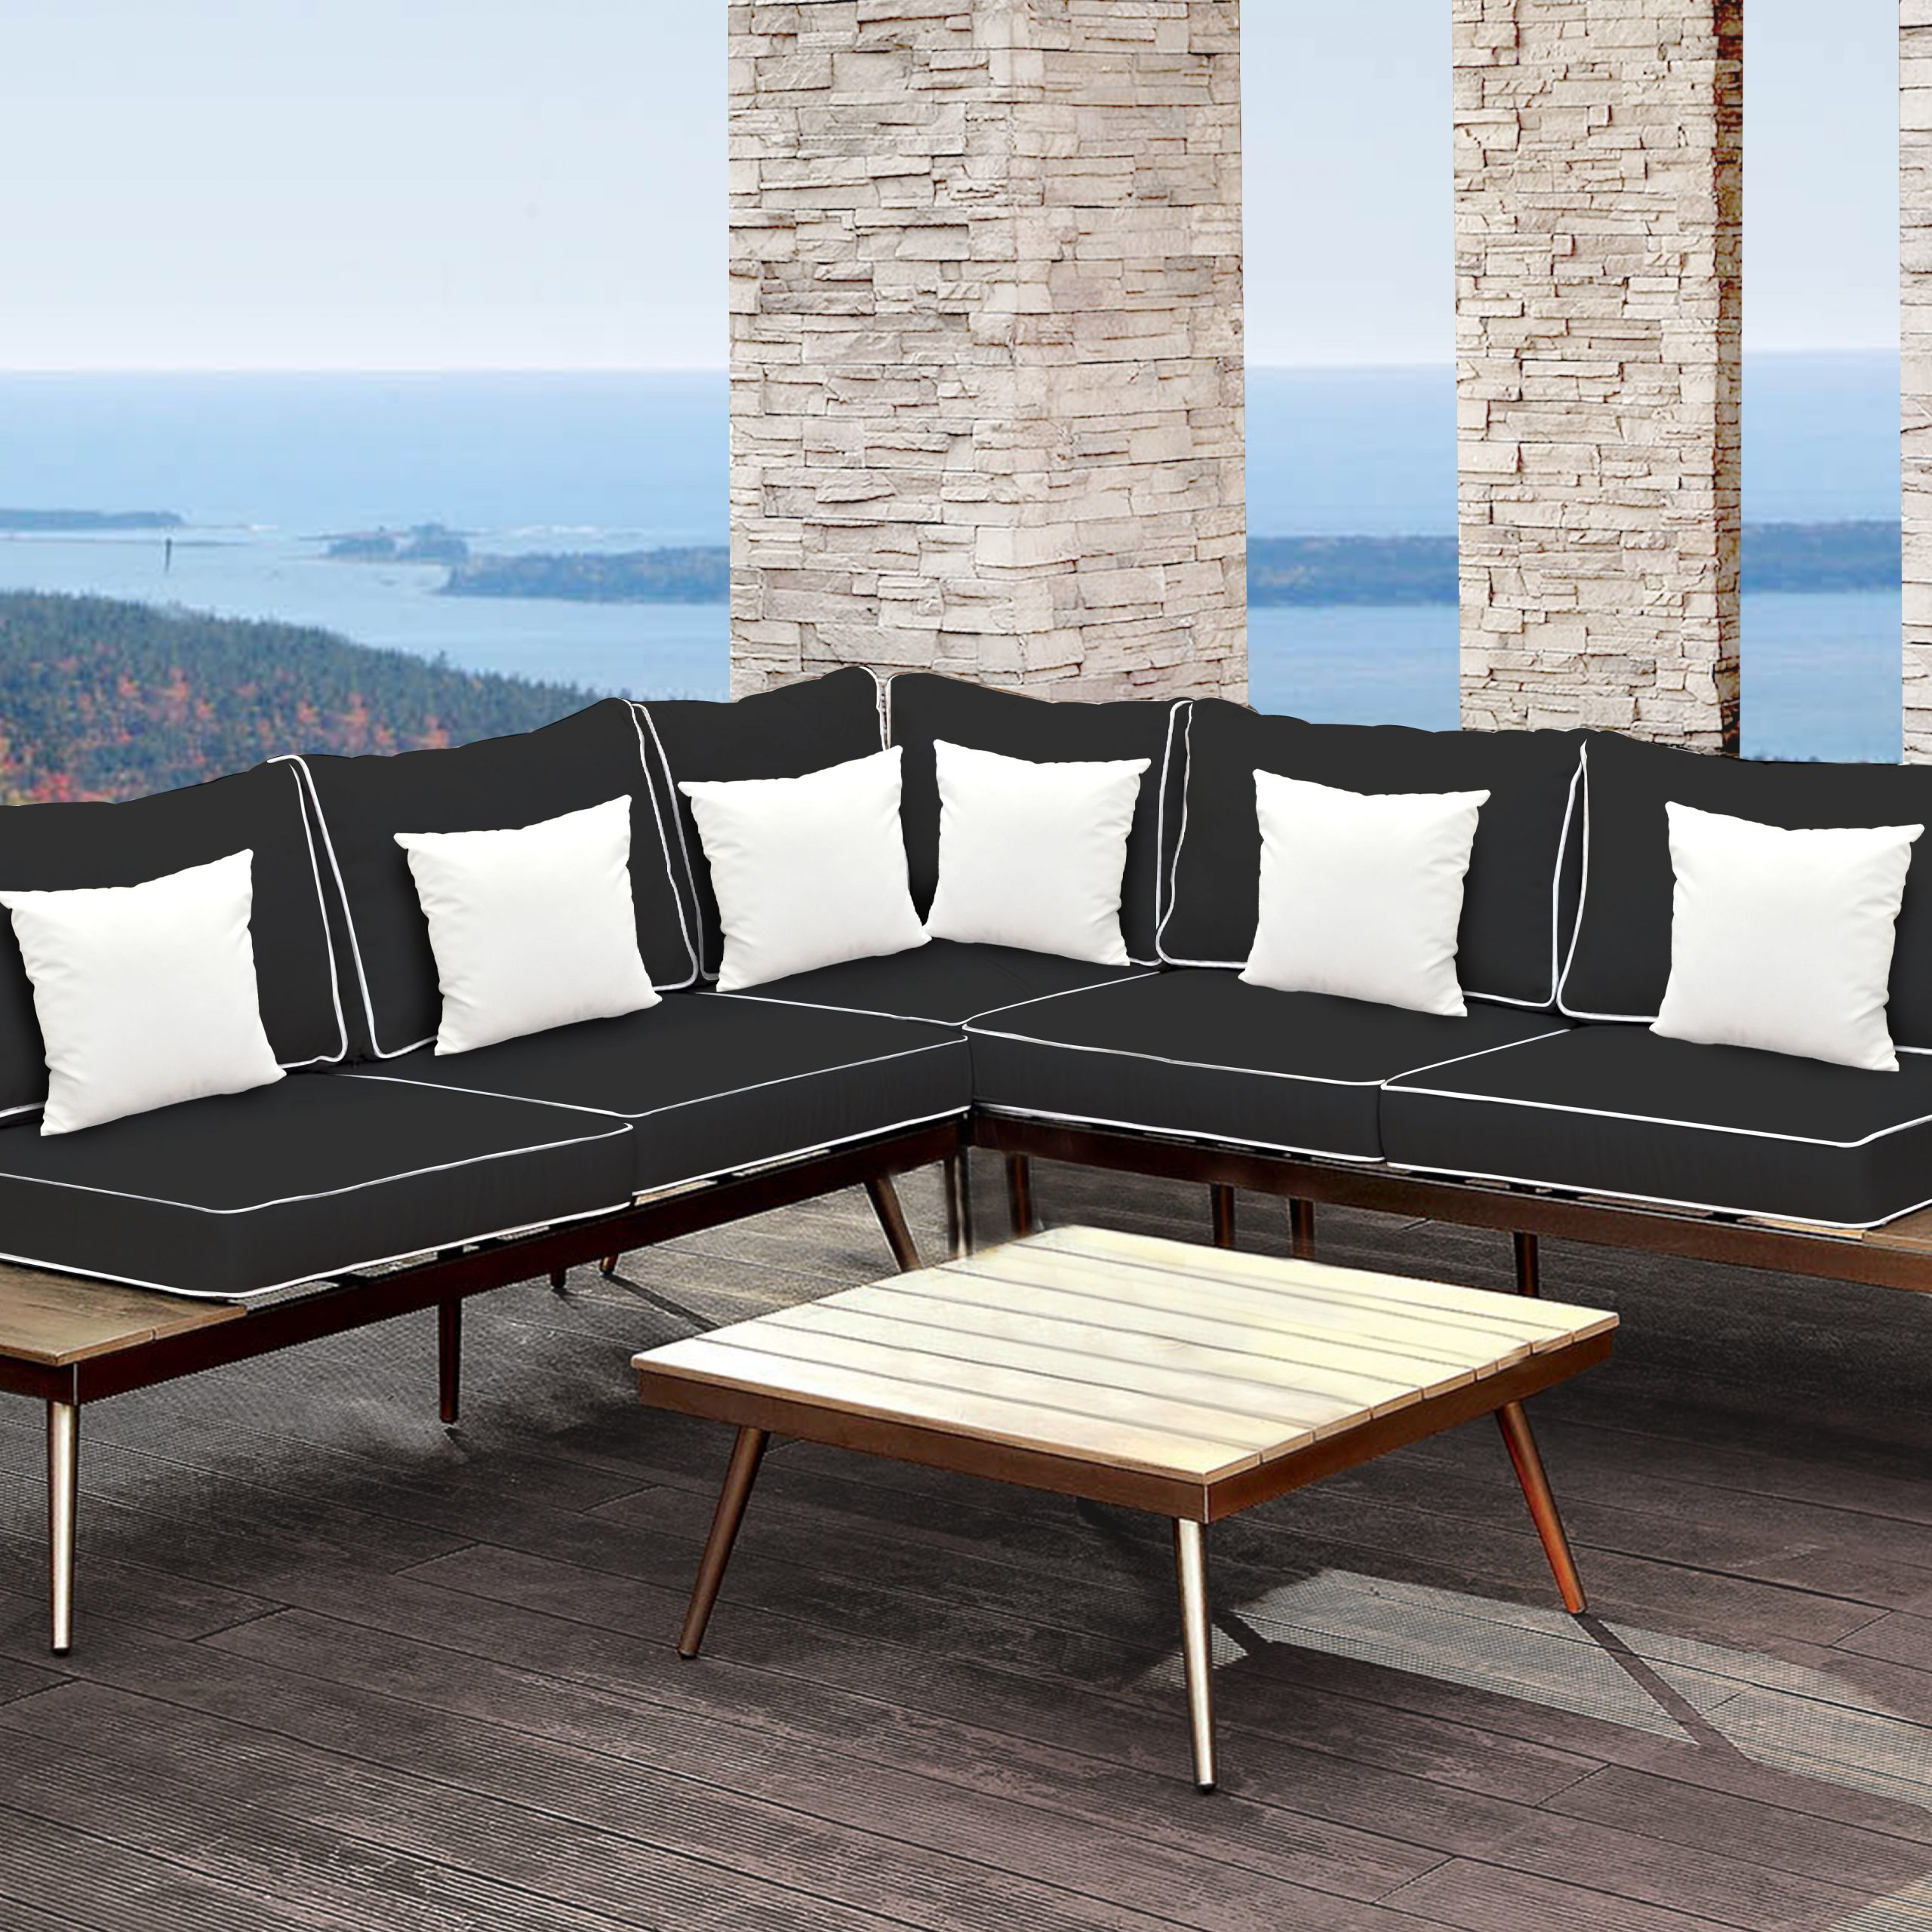 Olinda 4 Piece Teak Sectionals Seating Group With Cushions In Fashionable Wisner 3 Piece Sectional Seating Group With Cushions (View 15 of 25)